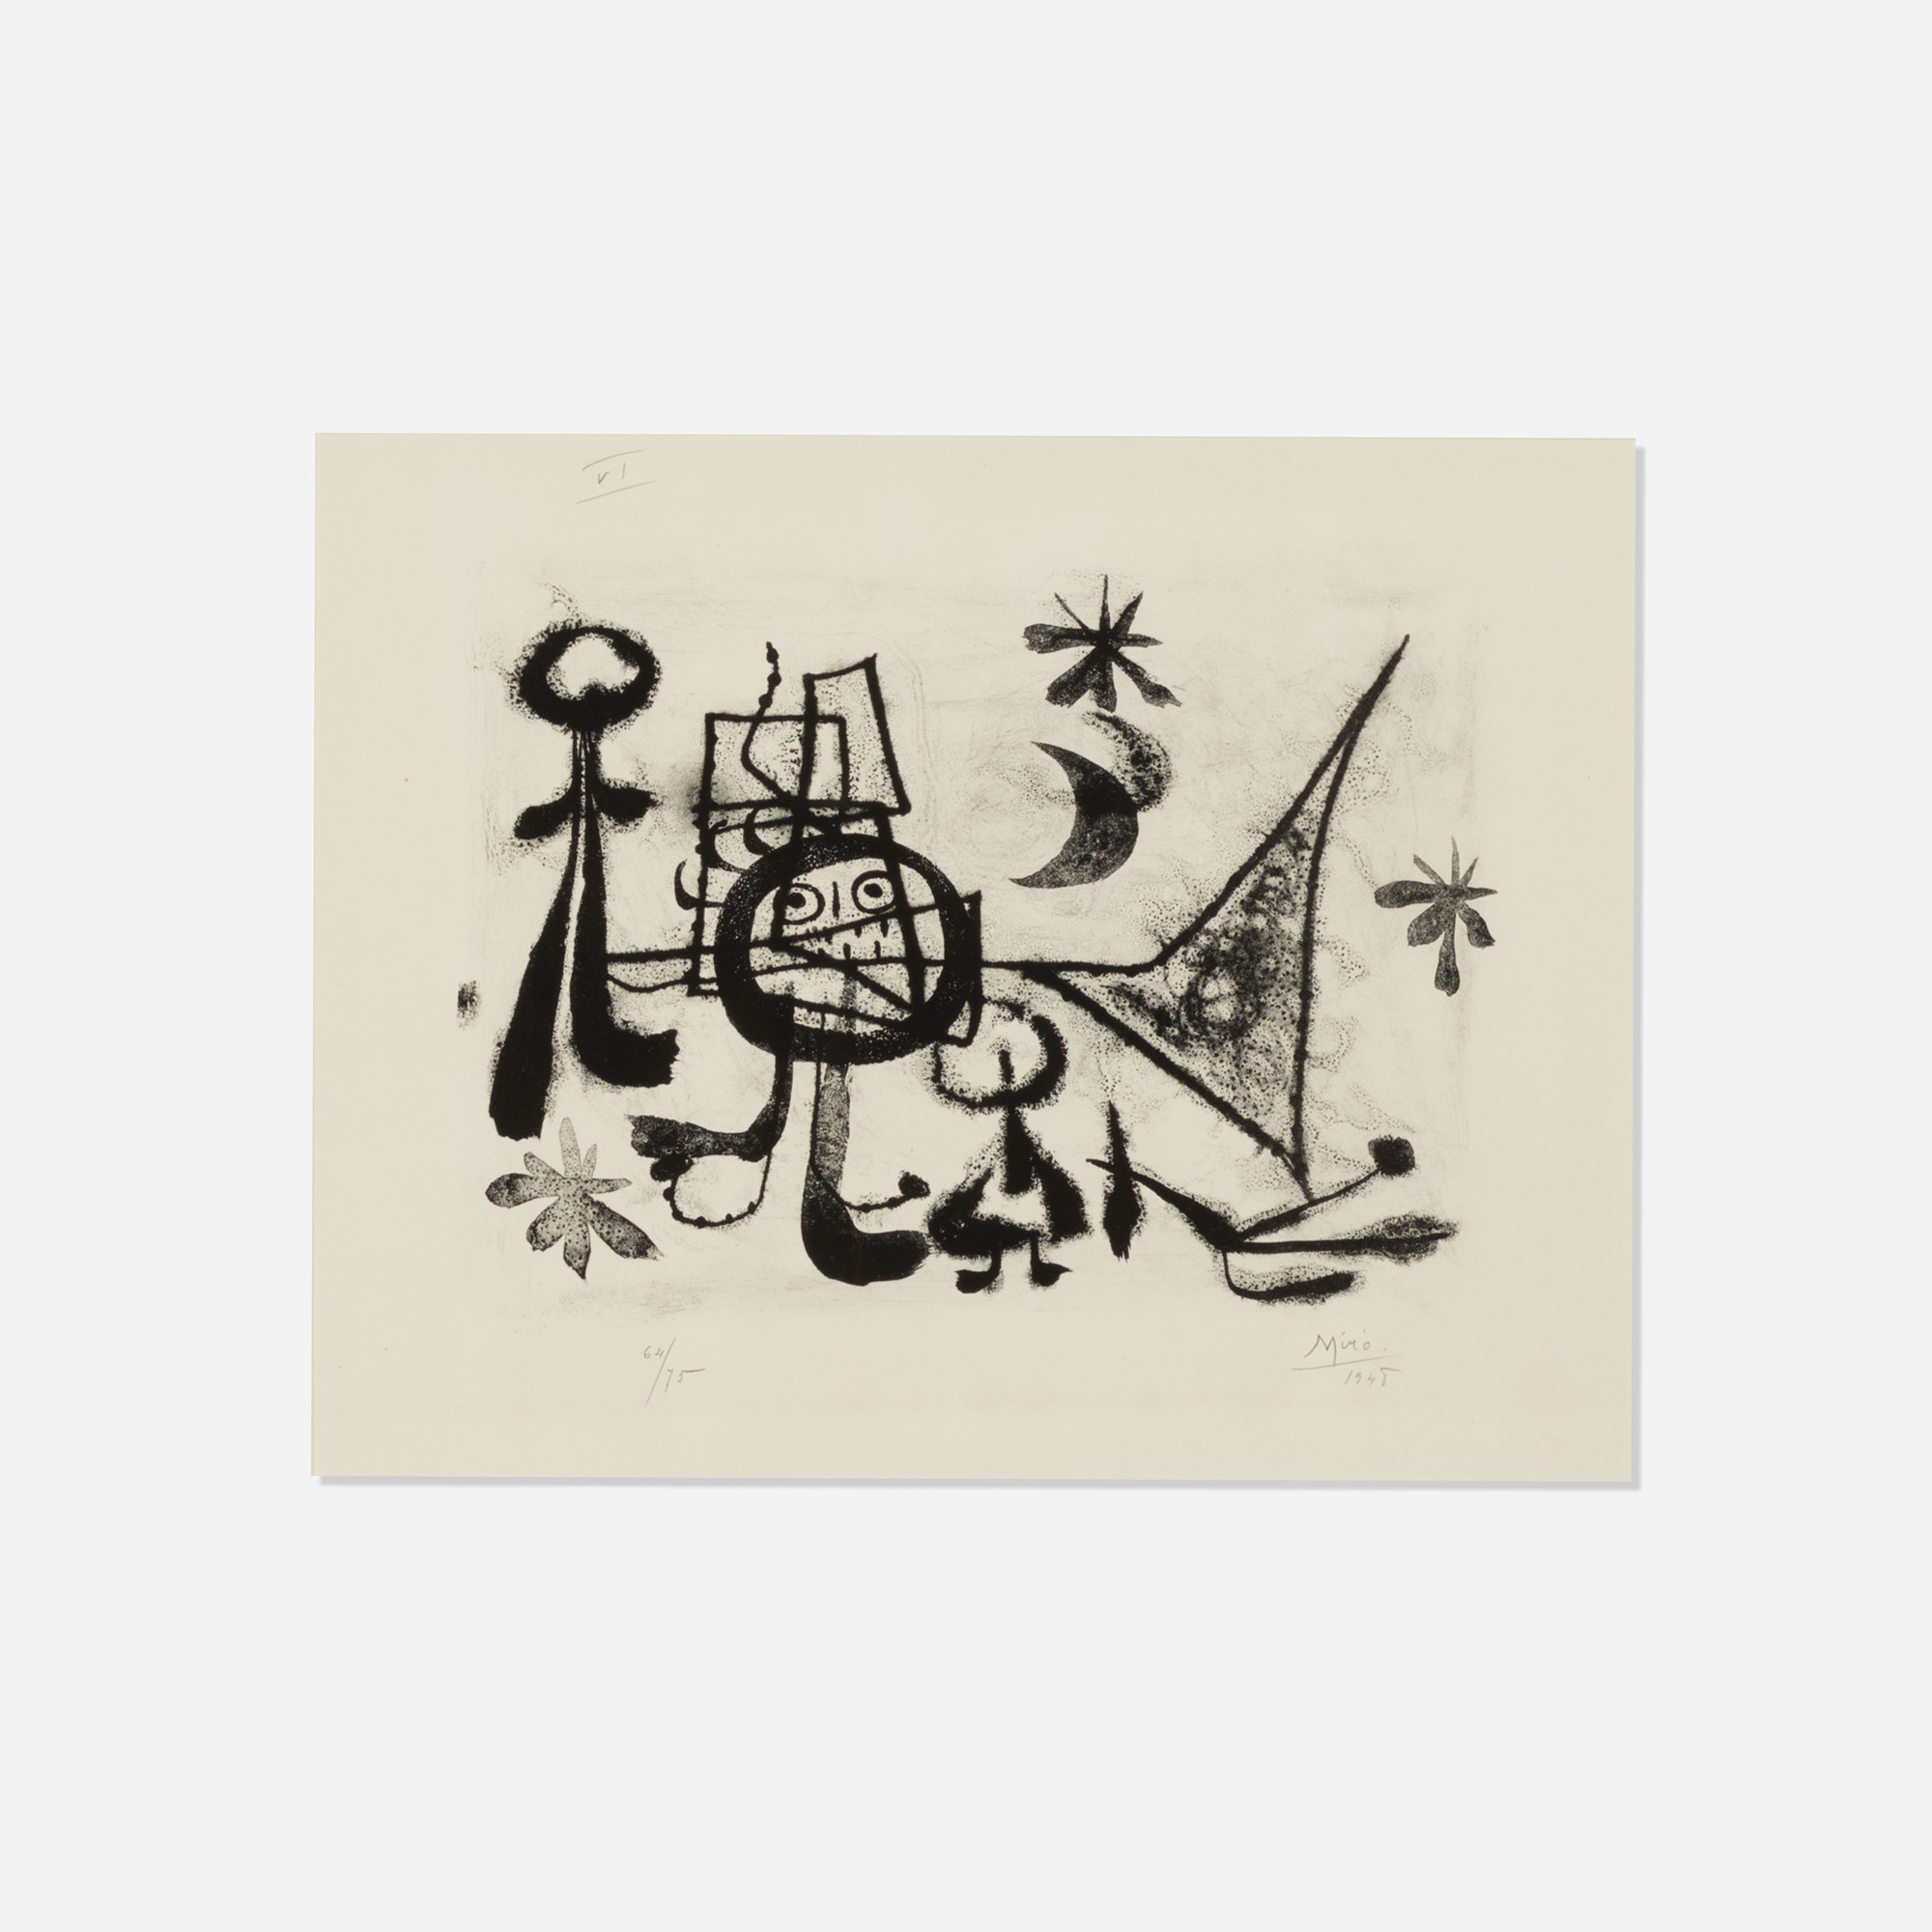 189: Joan Miró / Plate VI (from 13 Lithographies) (1 of 1)